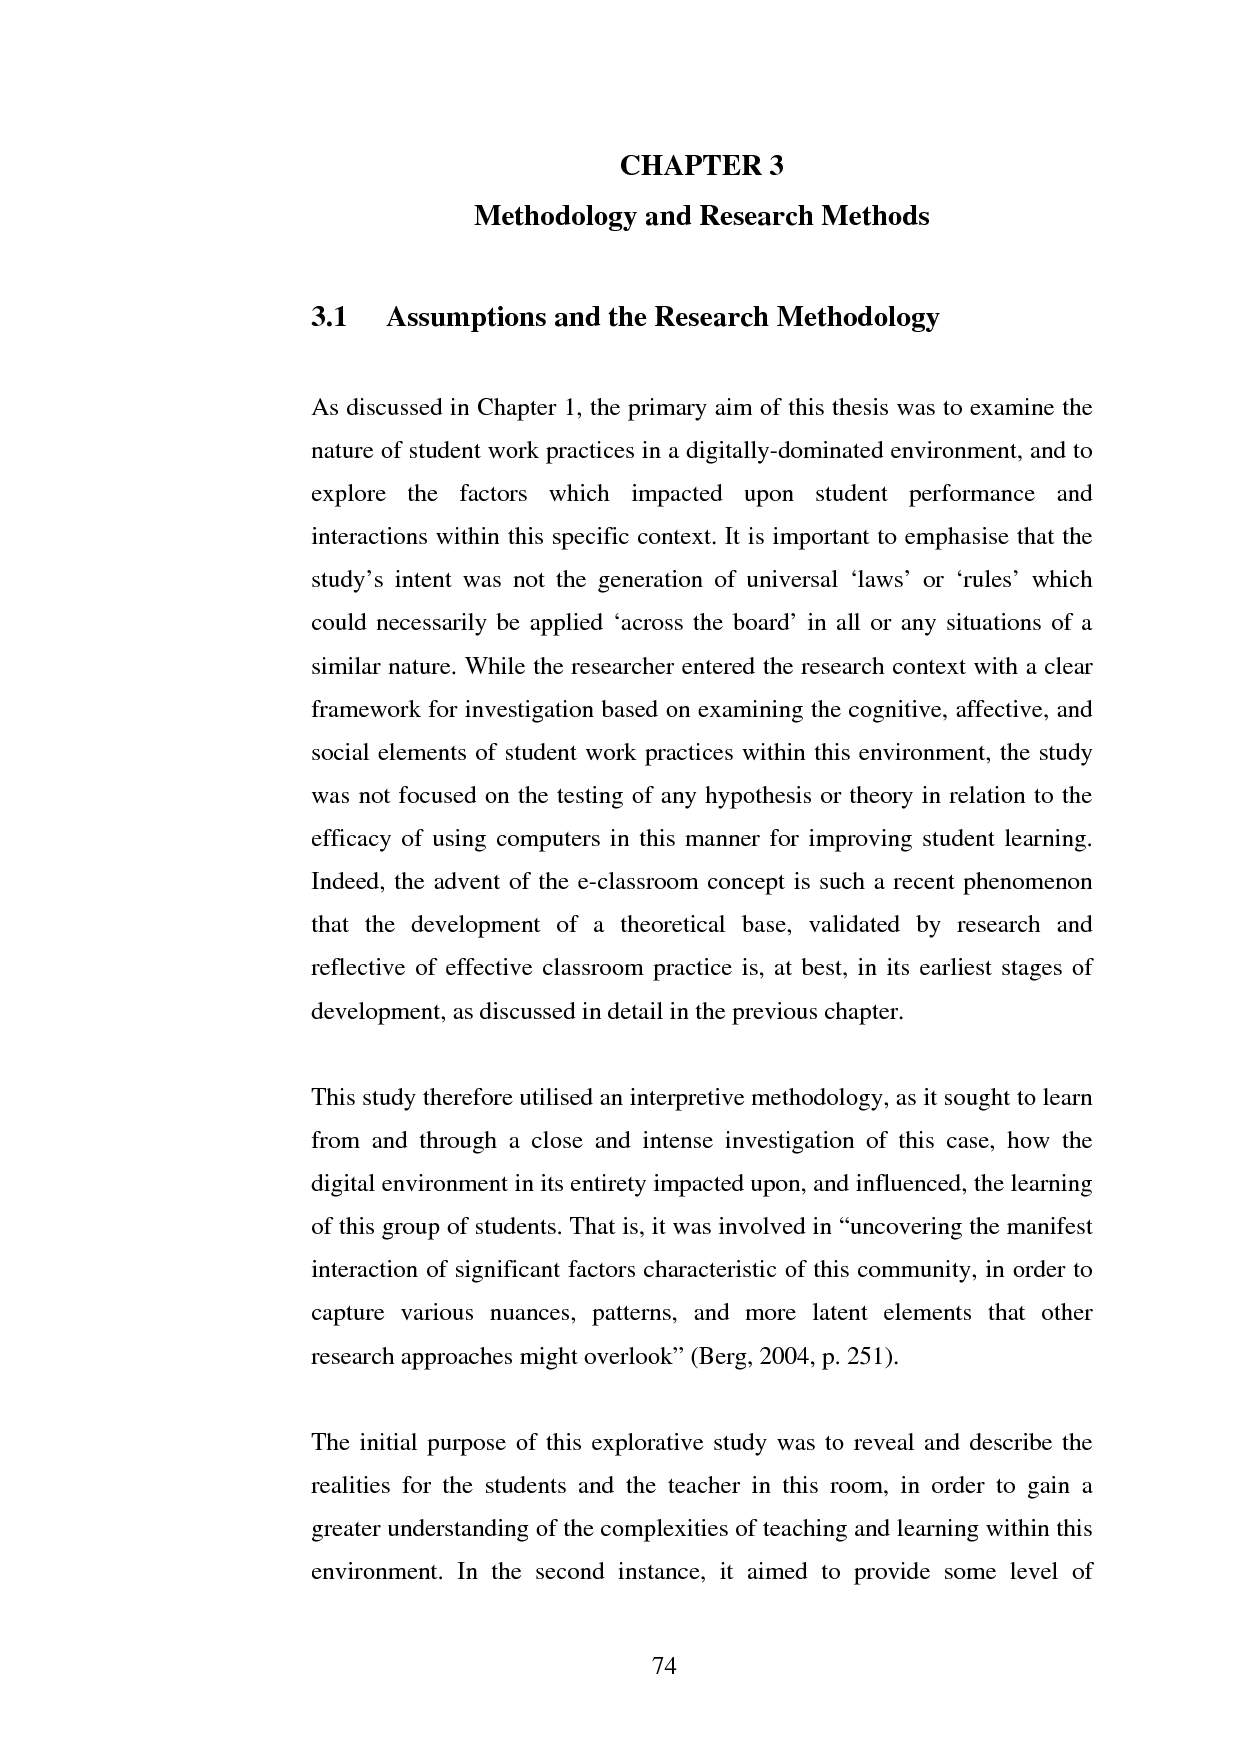 Do methods section dissertation